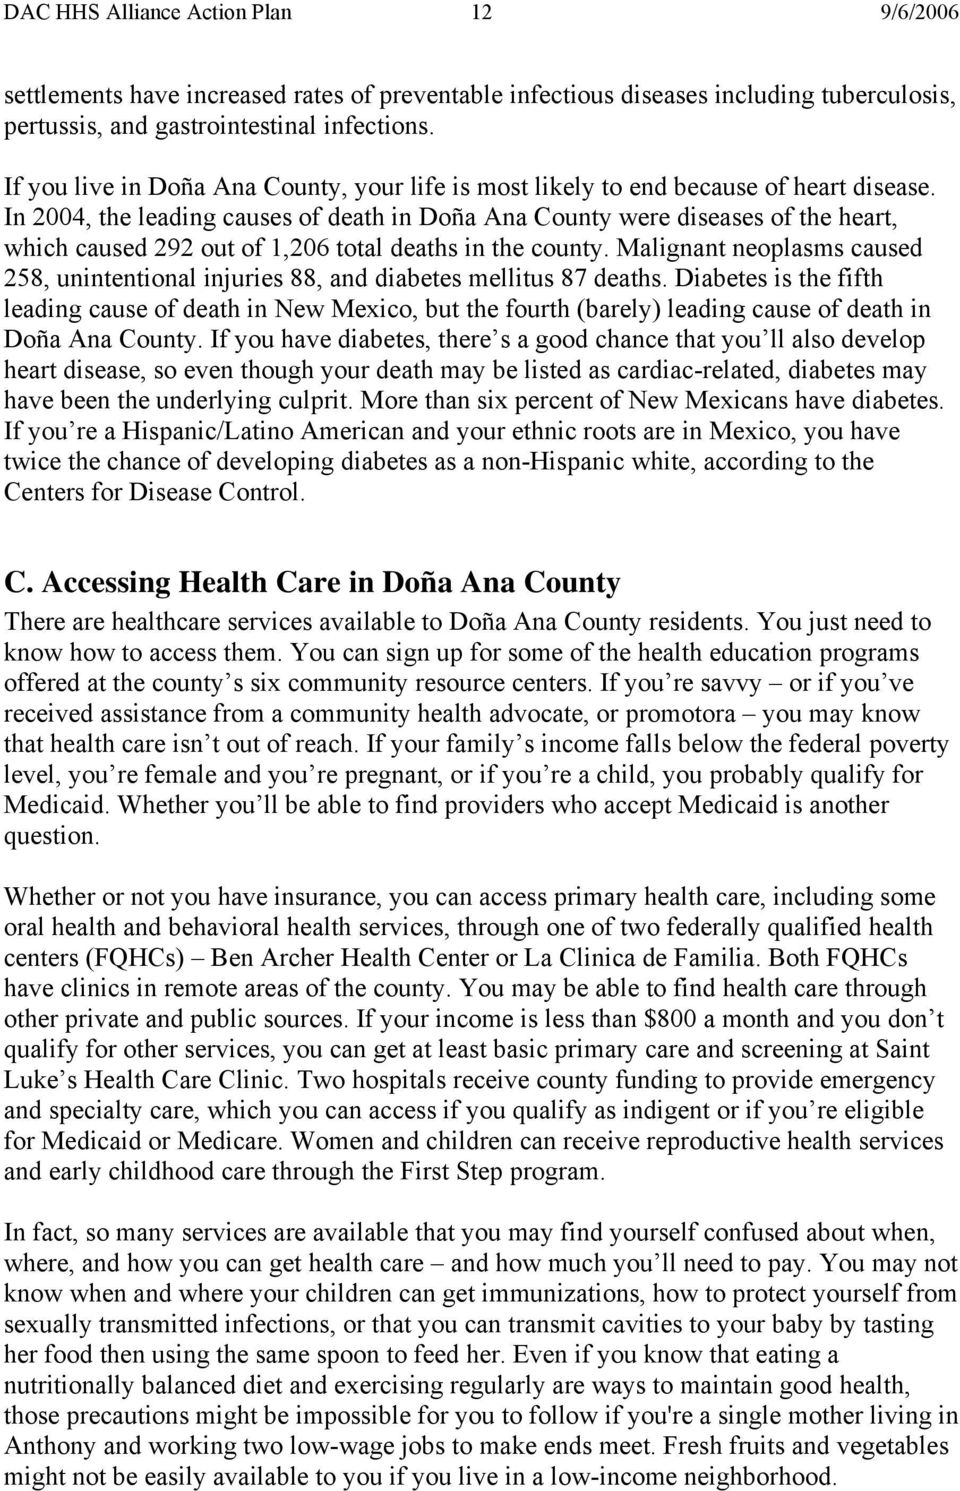 In 2004, the leading causes of death in Doña Ana County were diseases of the heart, which caused 292 out of 1,206 total deaths in the county.